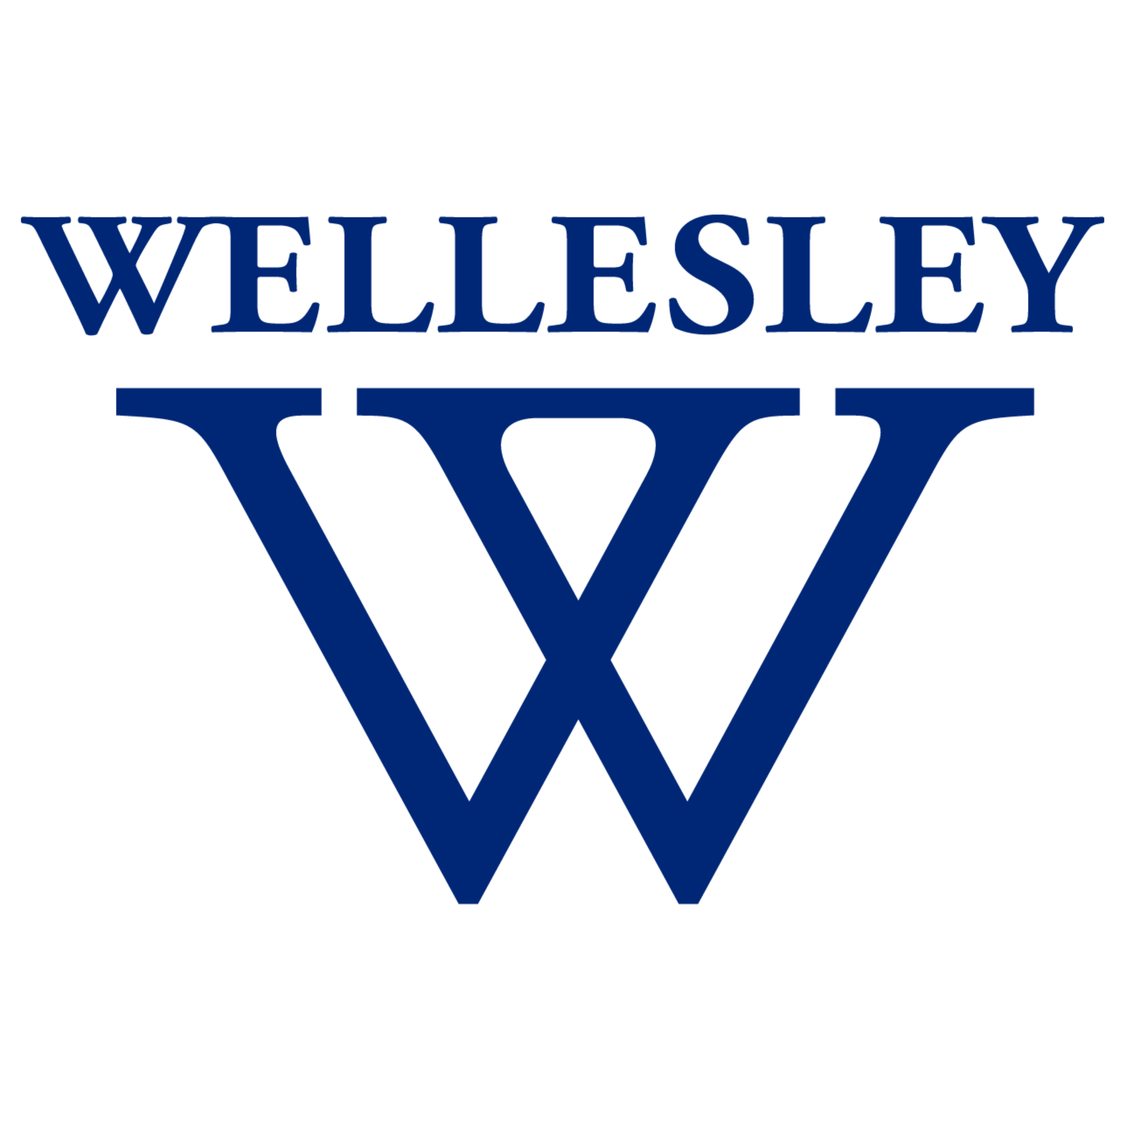 Wellesley logo, In blue text it reads Wellesley. Below is the Wellesley logo made of two large blue W's superimposed on each other.